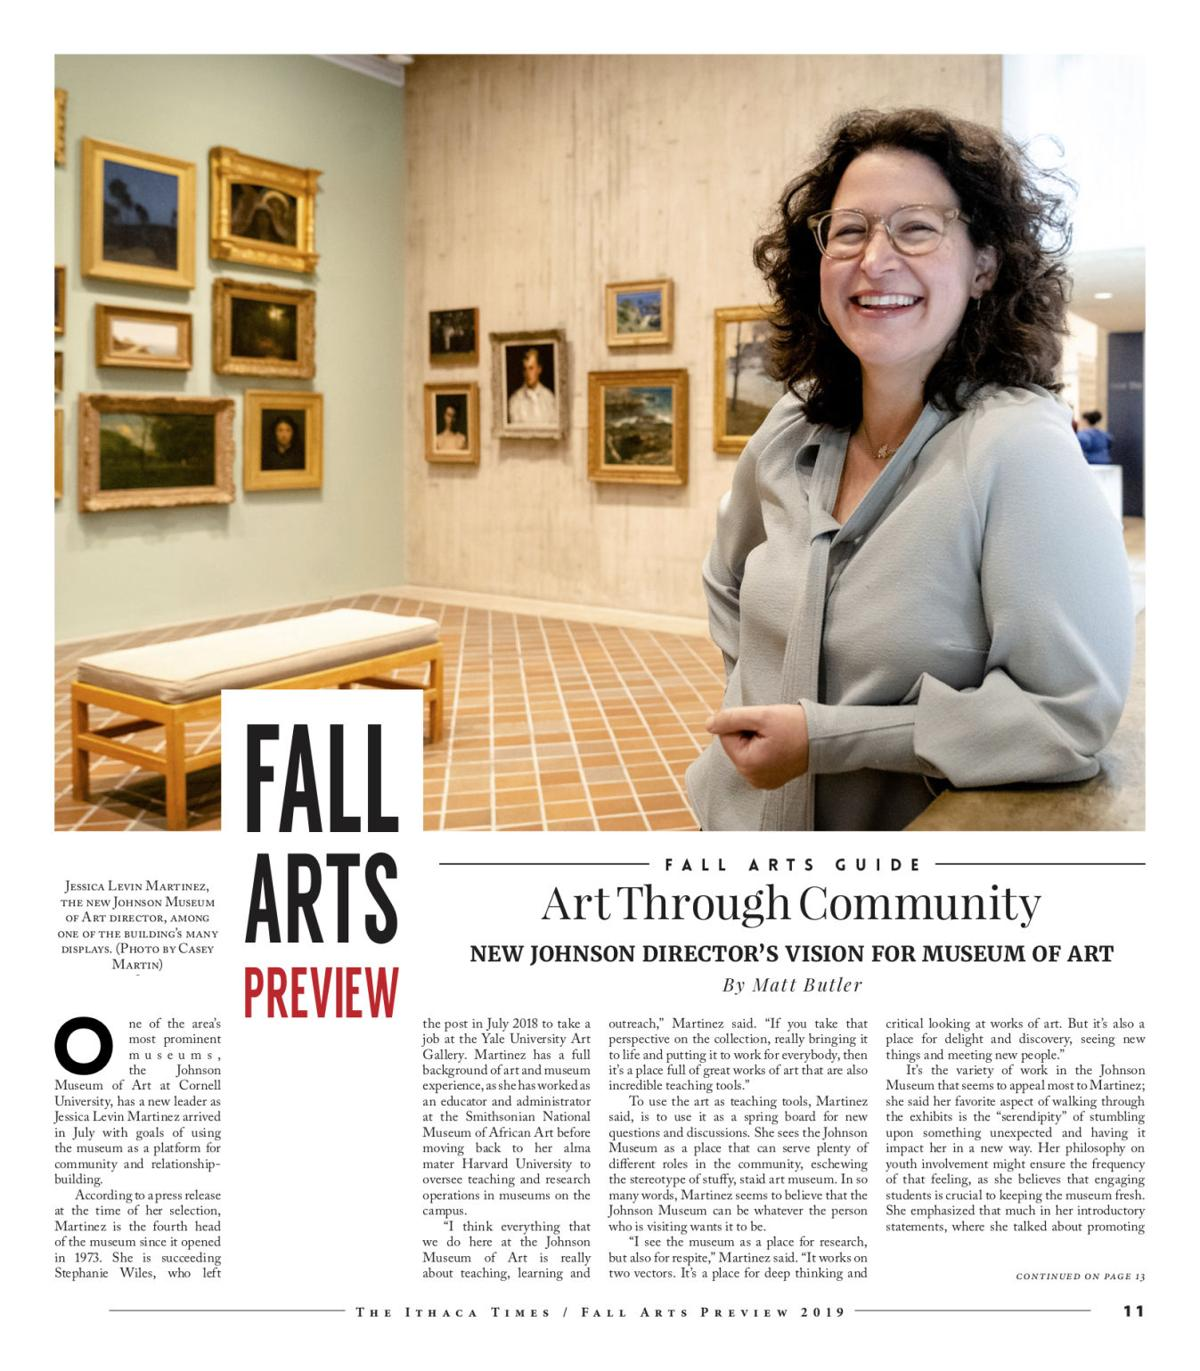 Fall Arts Preview 2019